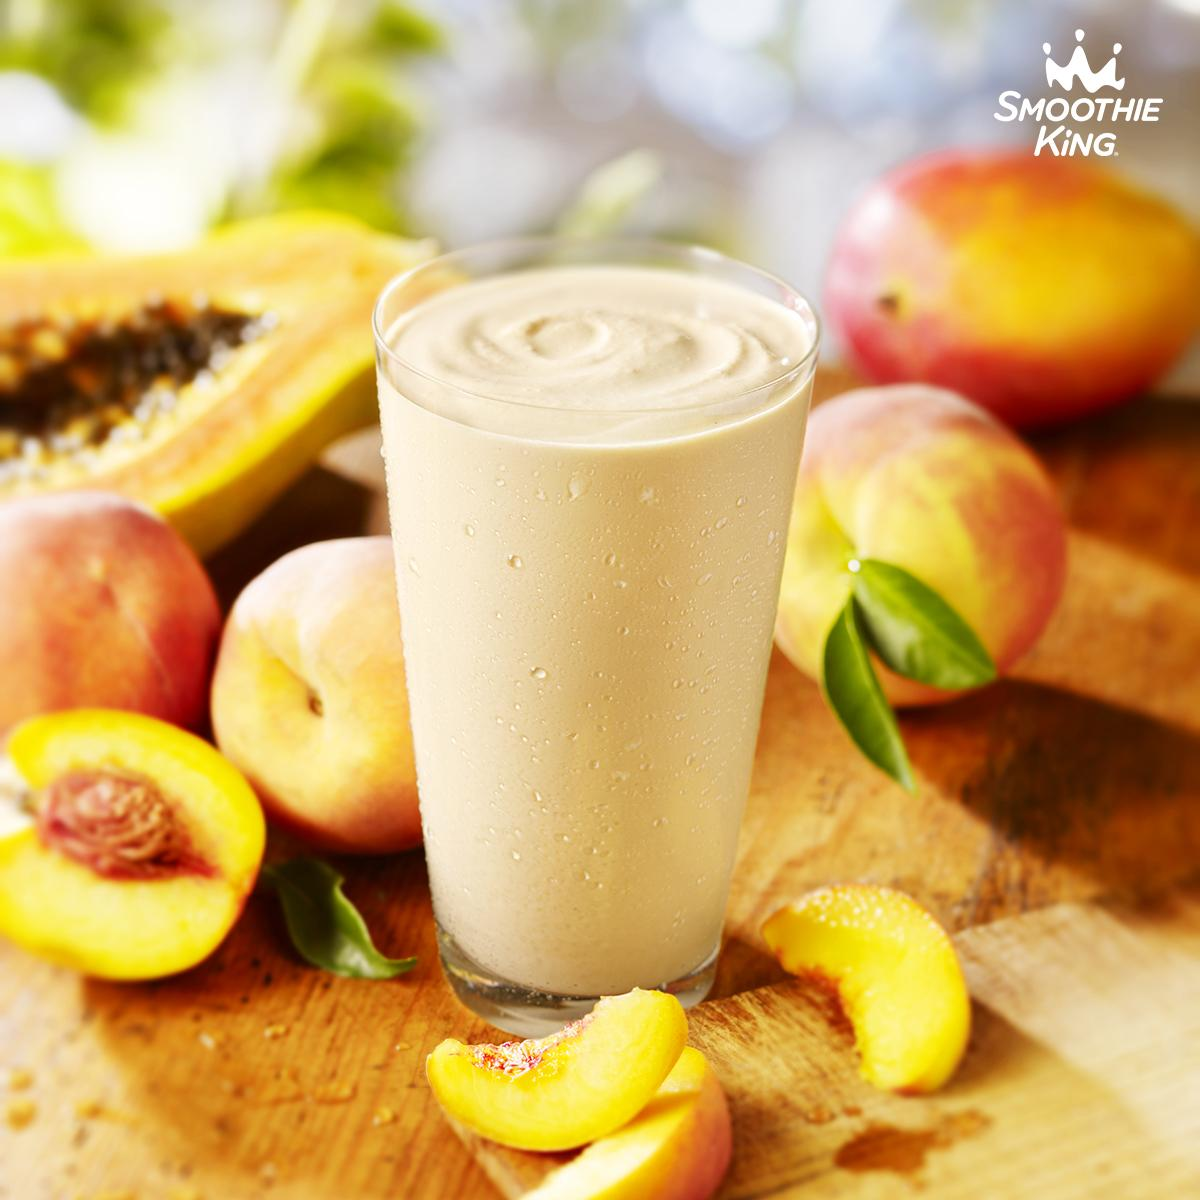 Smoothie King on Twitter: